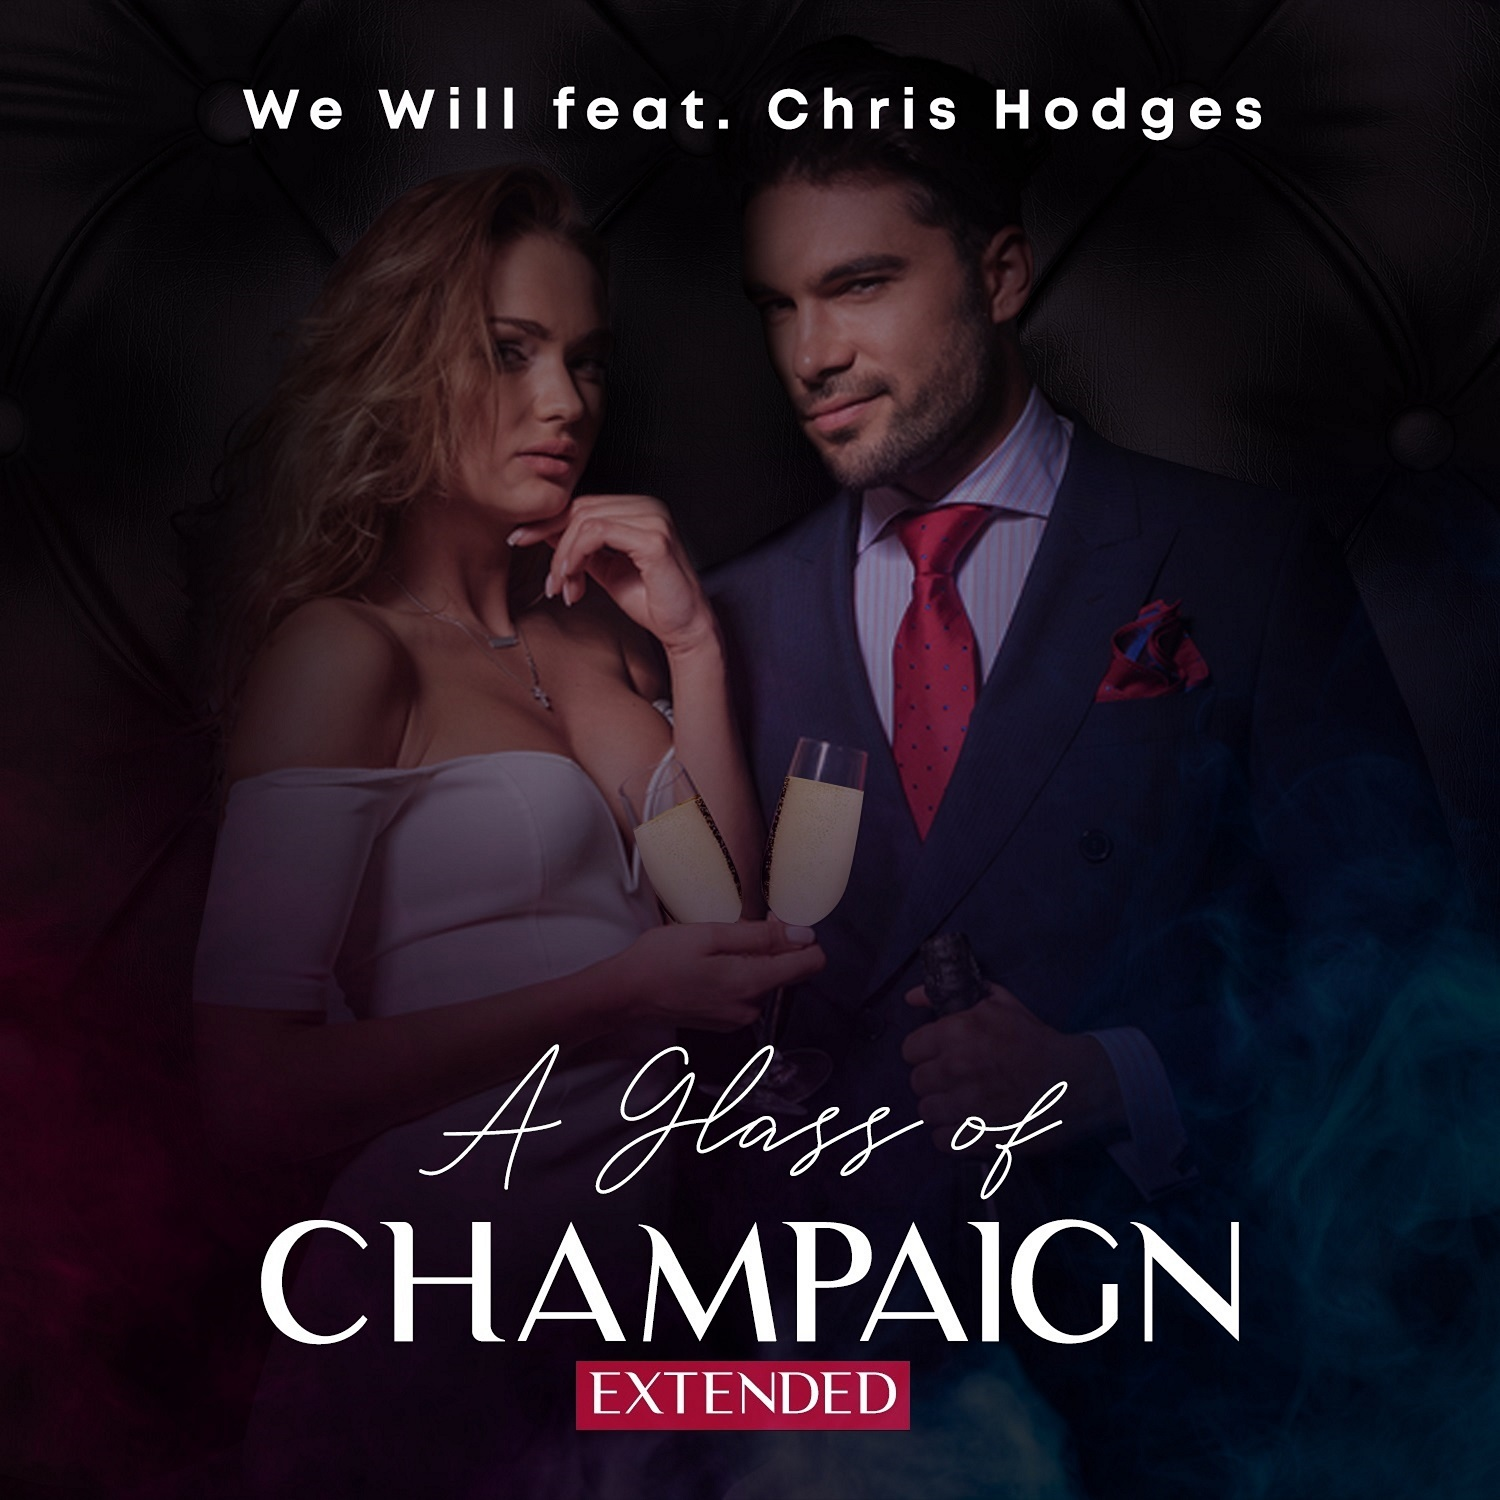 WE WILL FEAT. CHRIS HODGES-A Glas Of Champaign